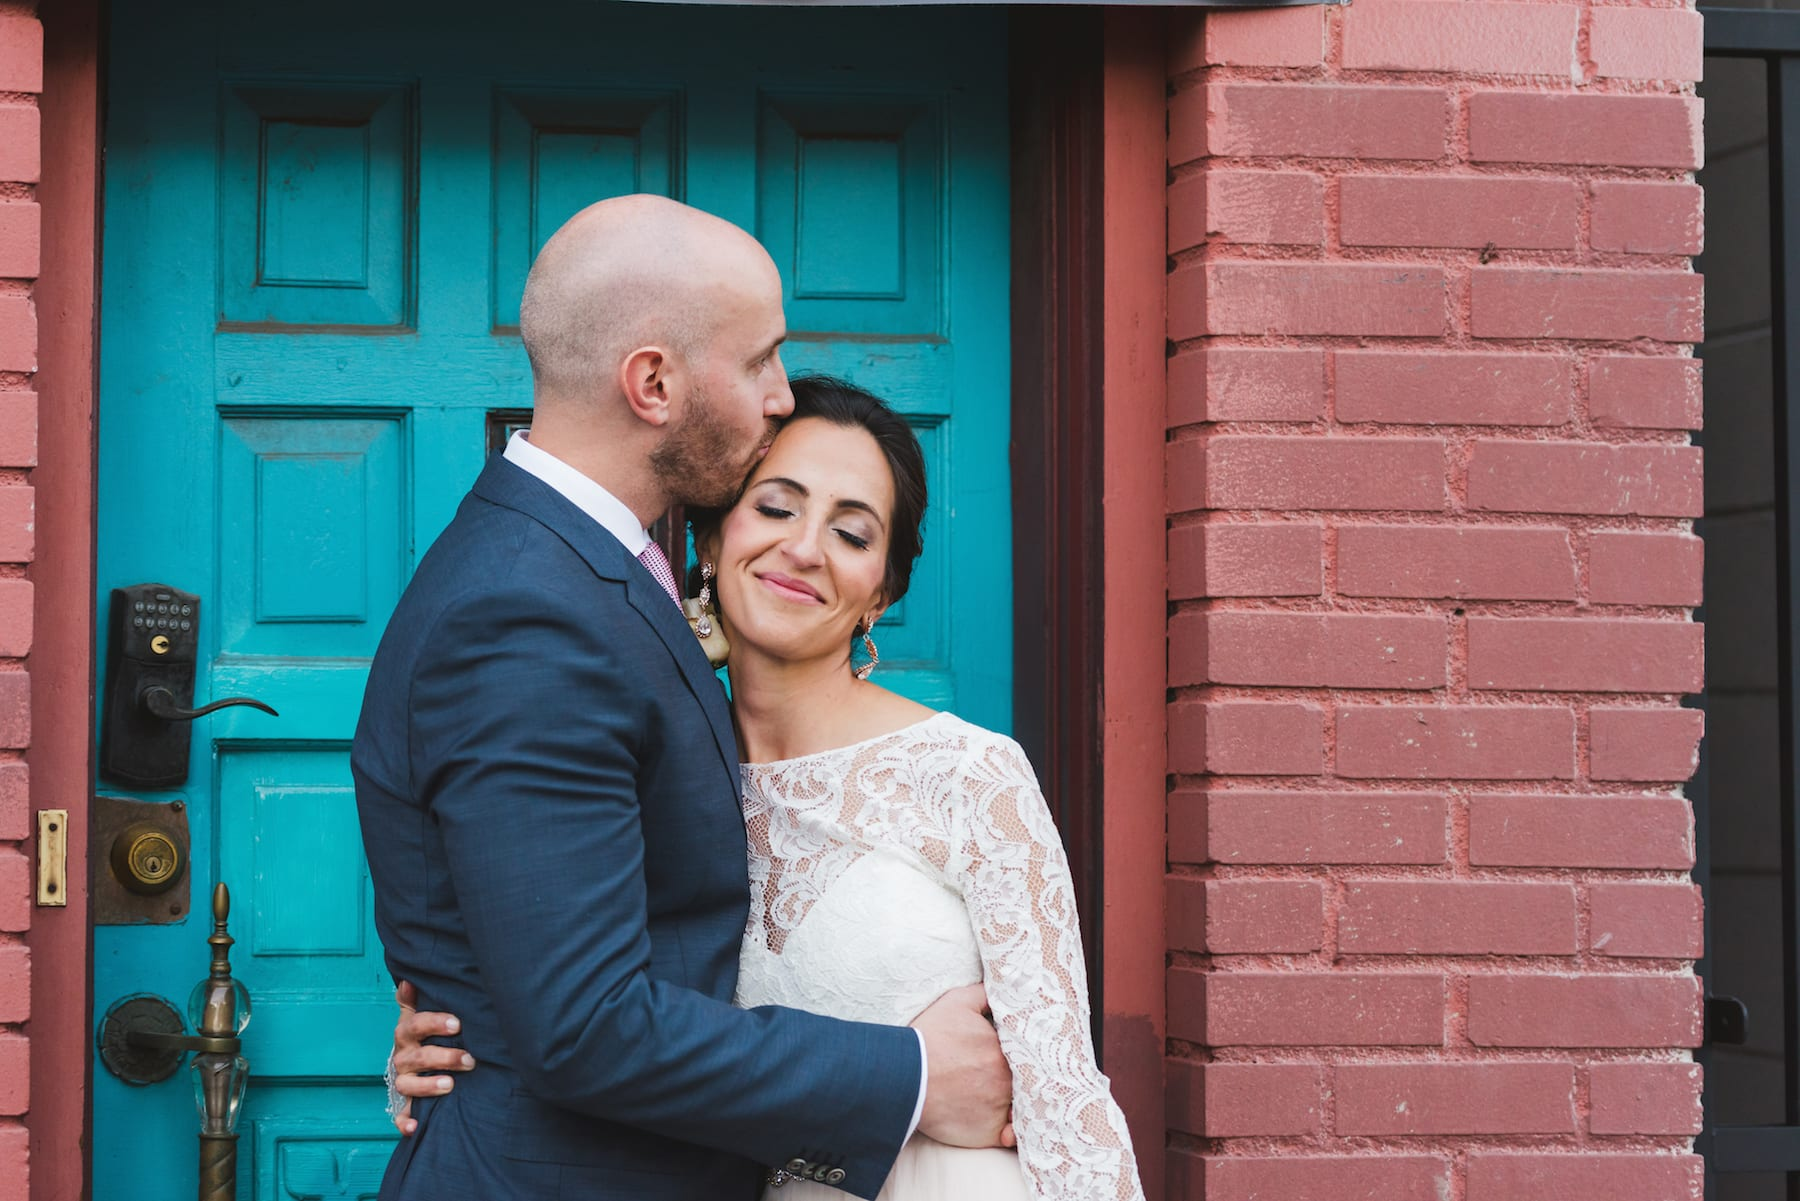 A couple embraces one another in front of a blue doorway